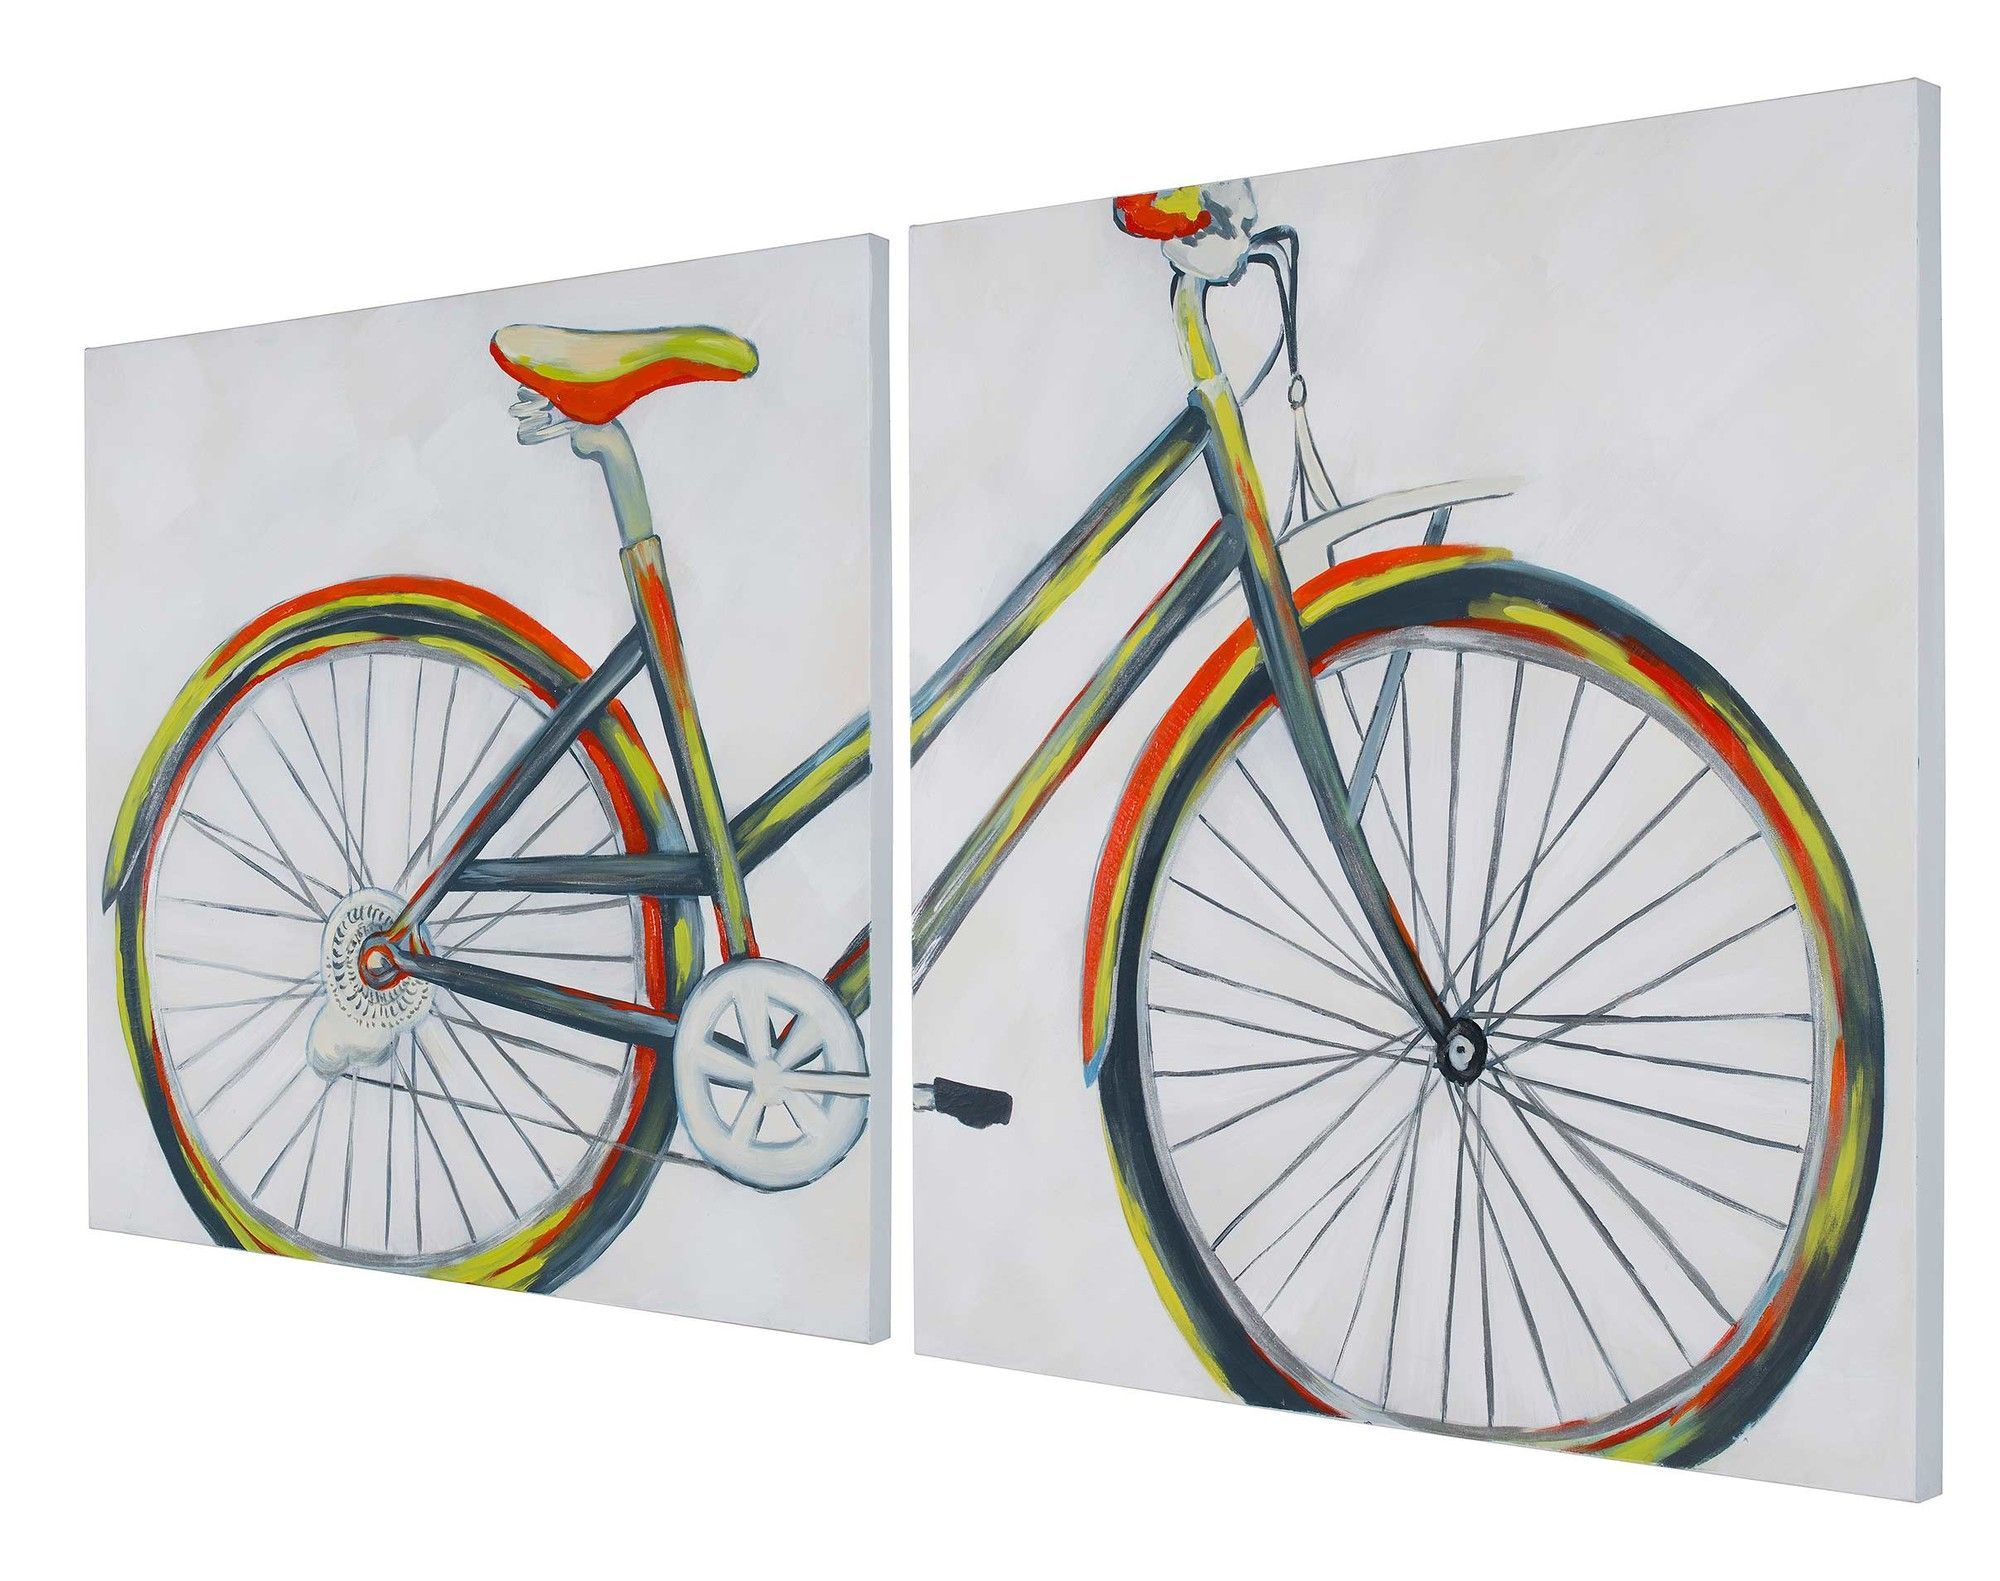 Bike With Flower Basket Acrylic Painting Tutorial By Angela